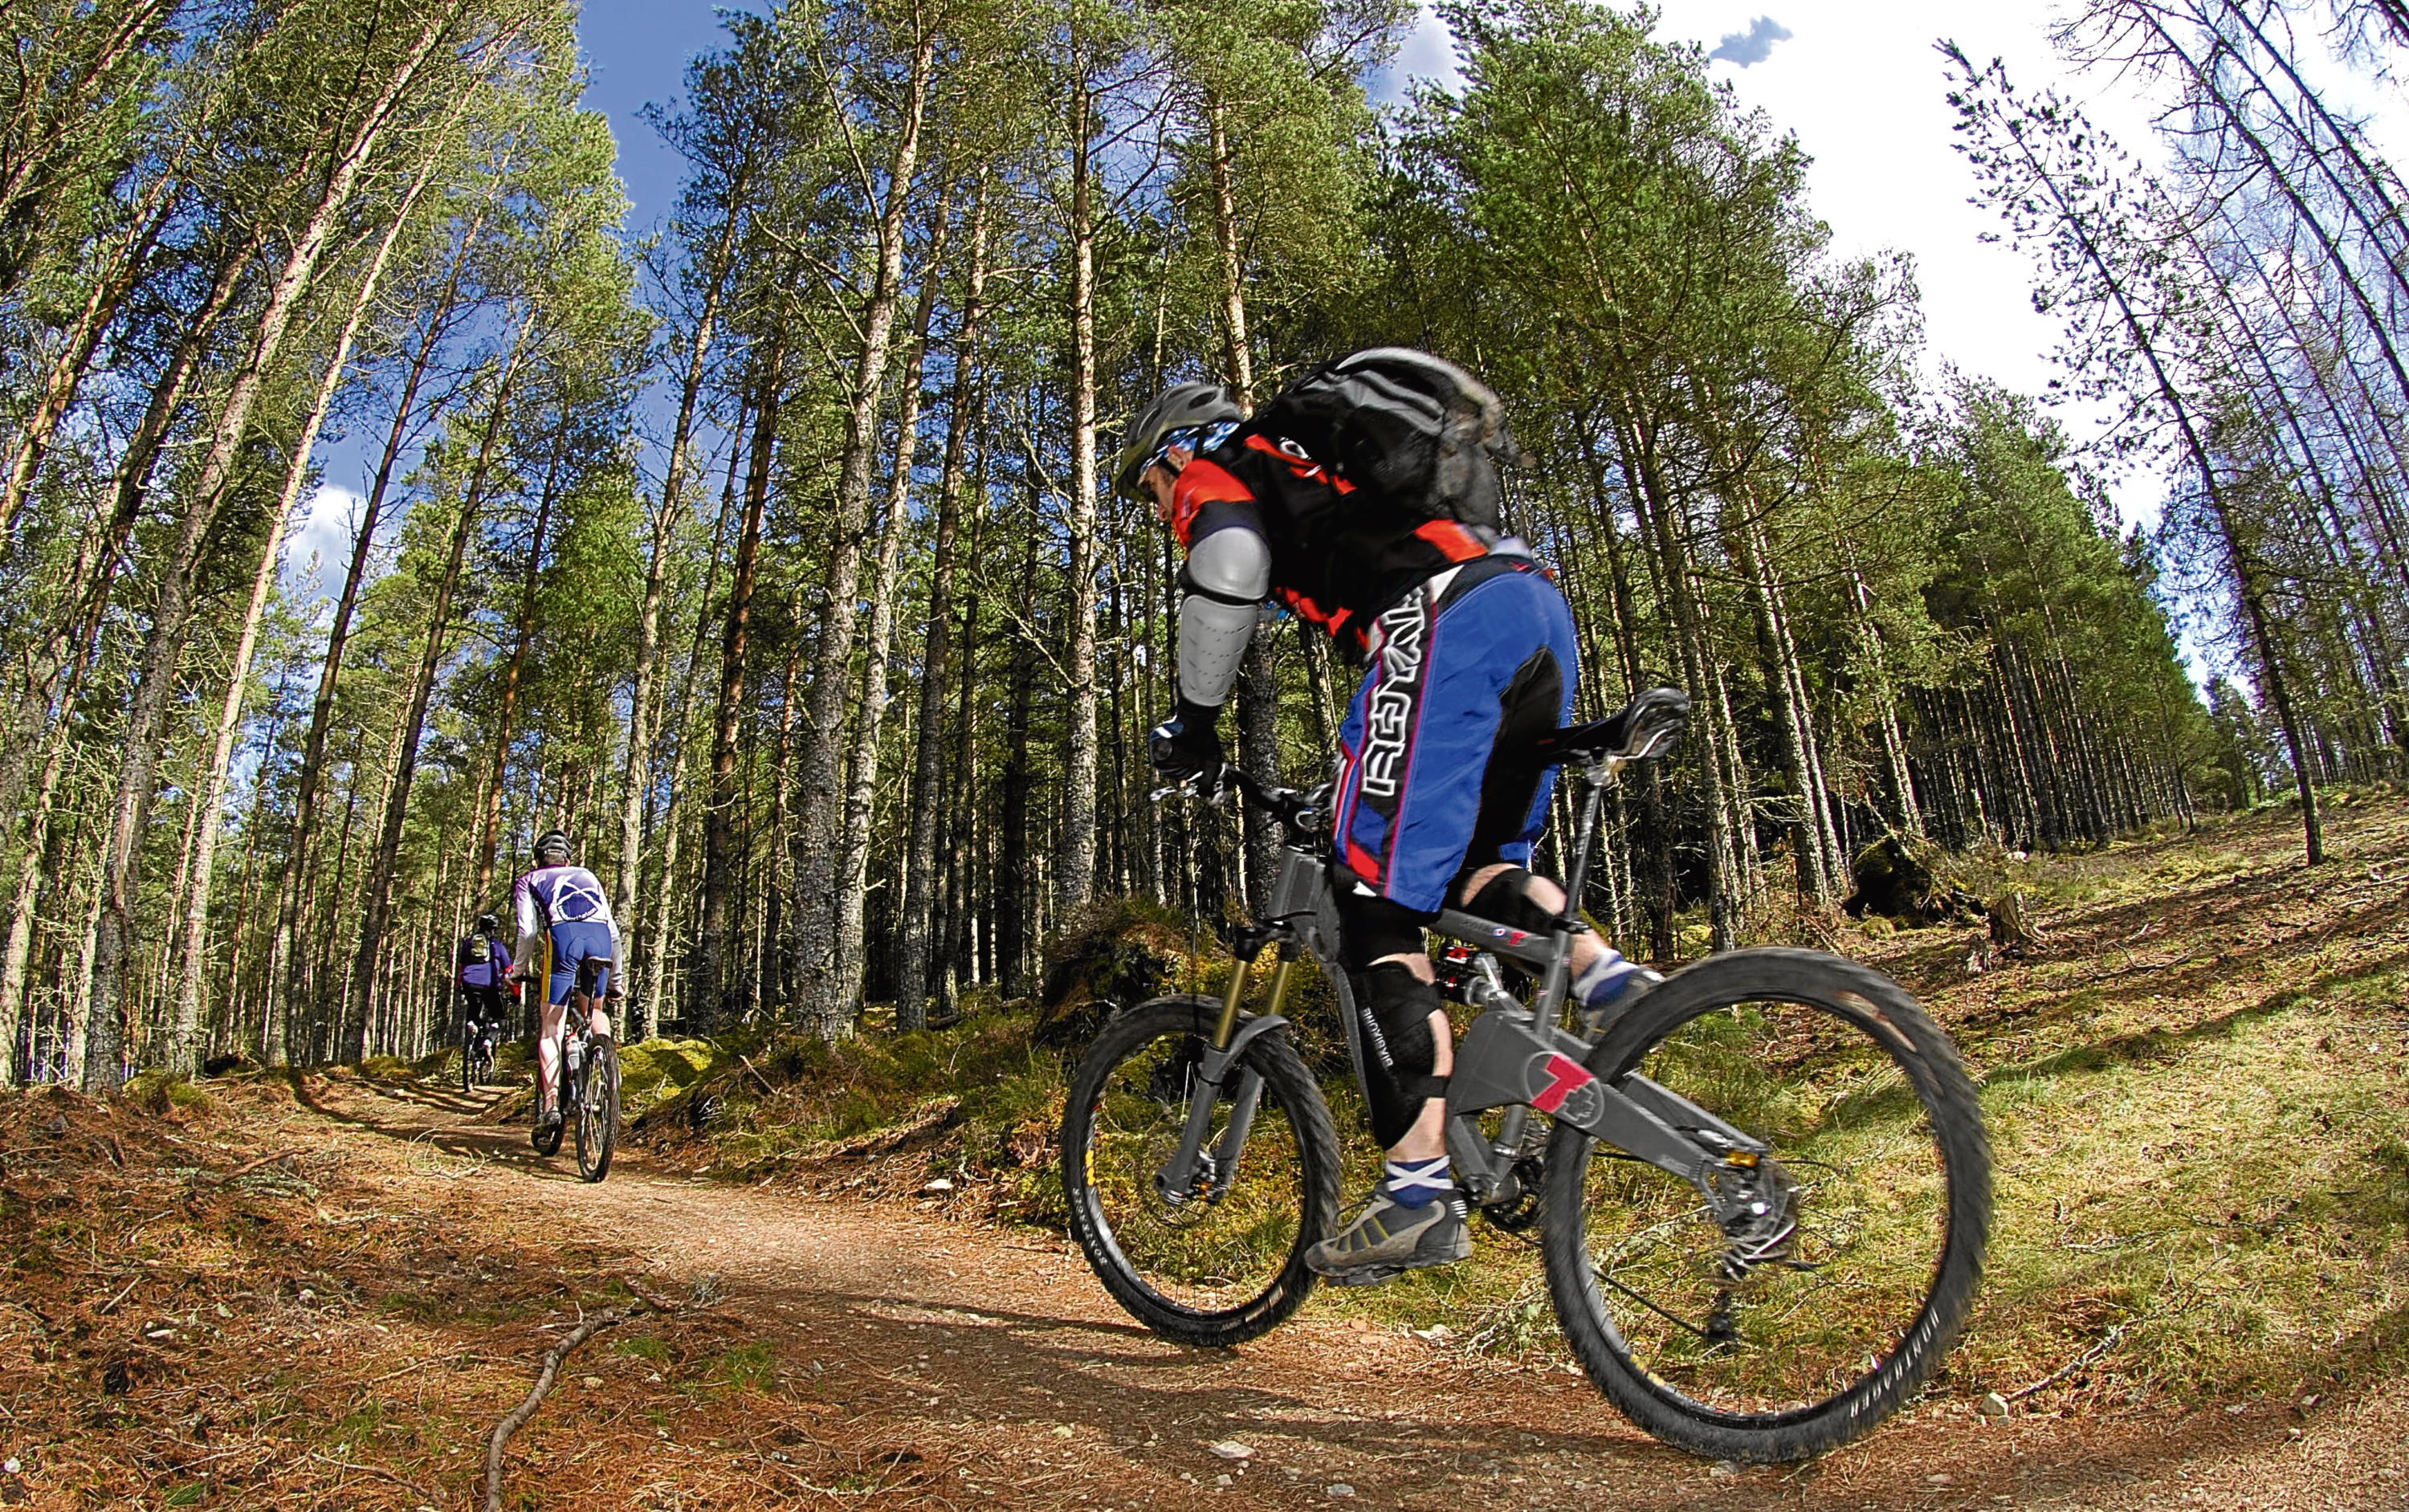 The campaign aims to tackle the growing problem of illegal mountain bike trails.